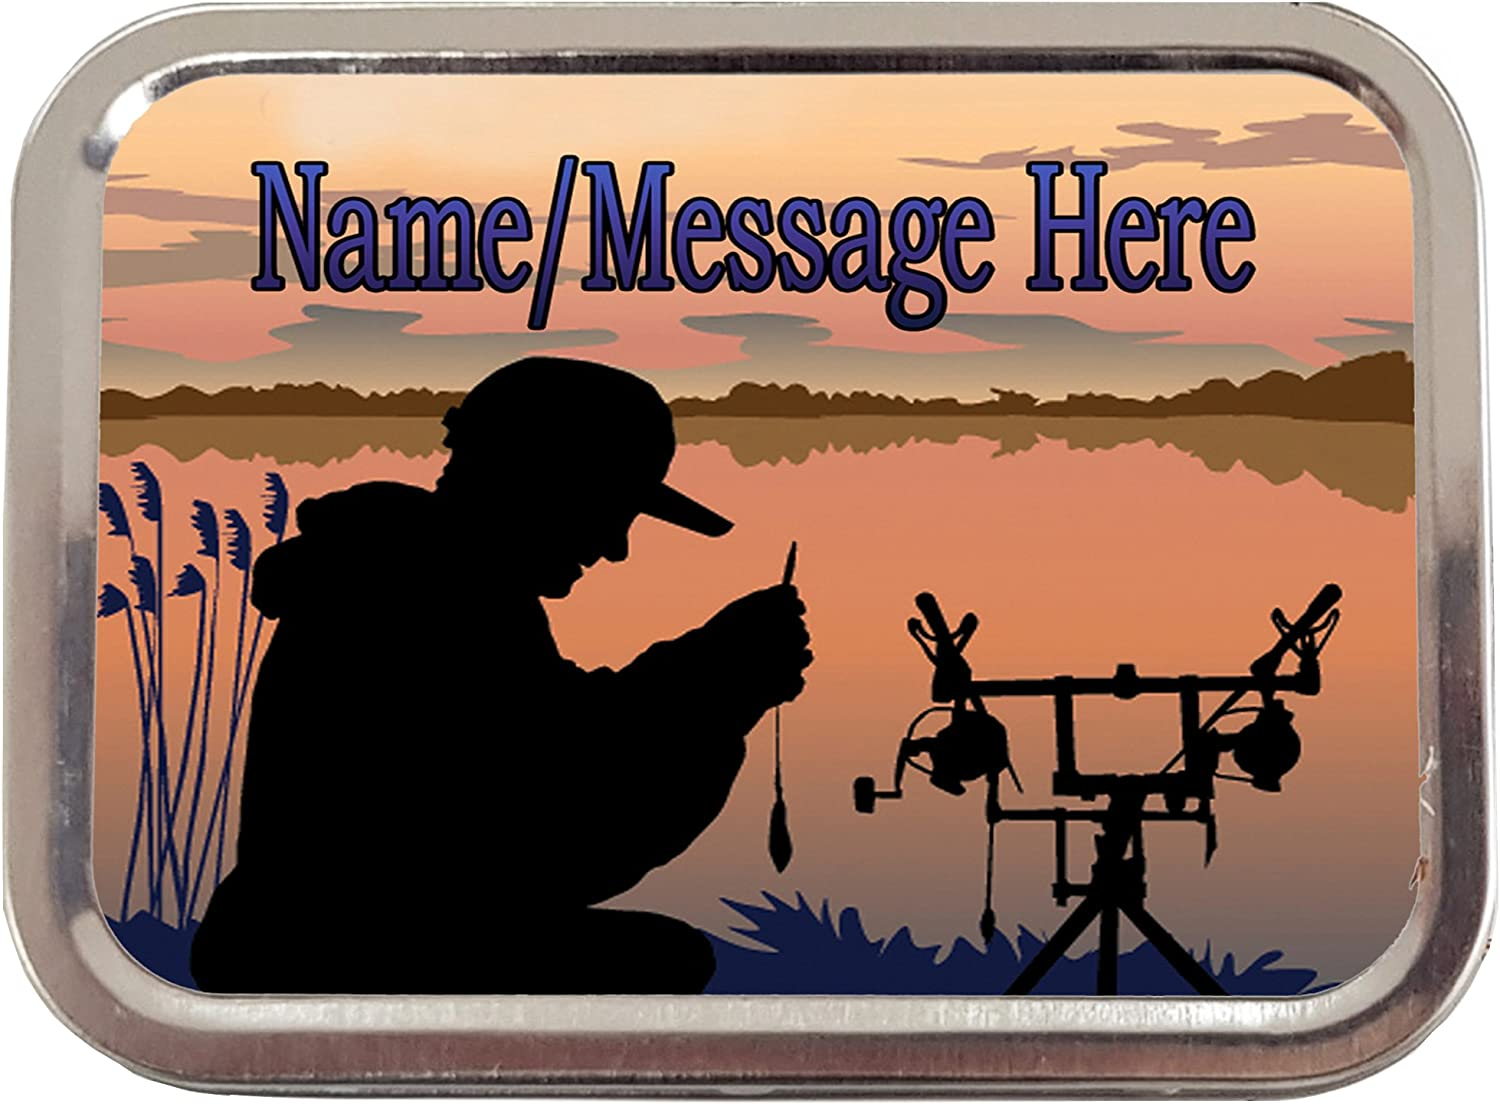 FISHERMAN EMBROIDERED PERSONALISED FISHING TOWEL CHRISTMAS GIFT STOCKING FILLER